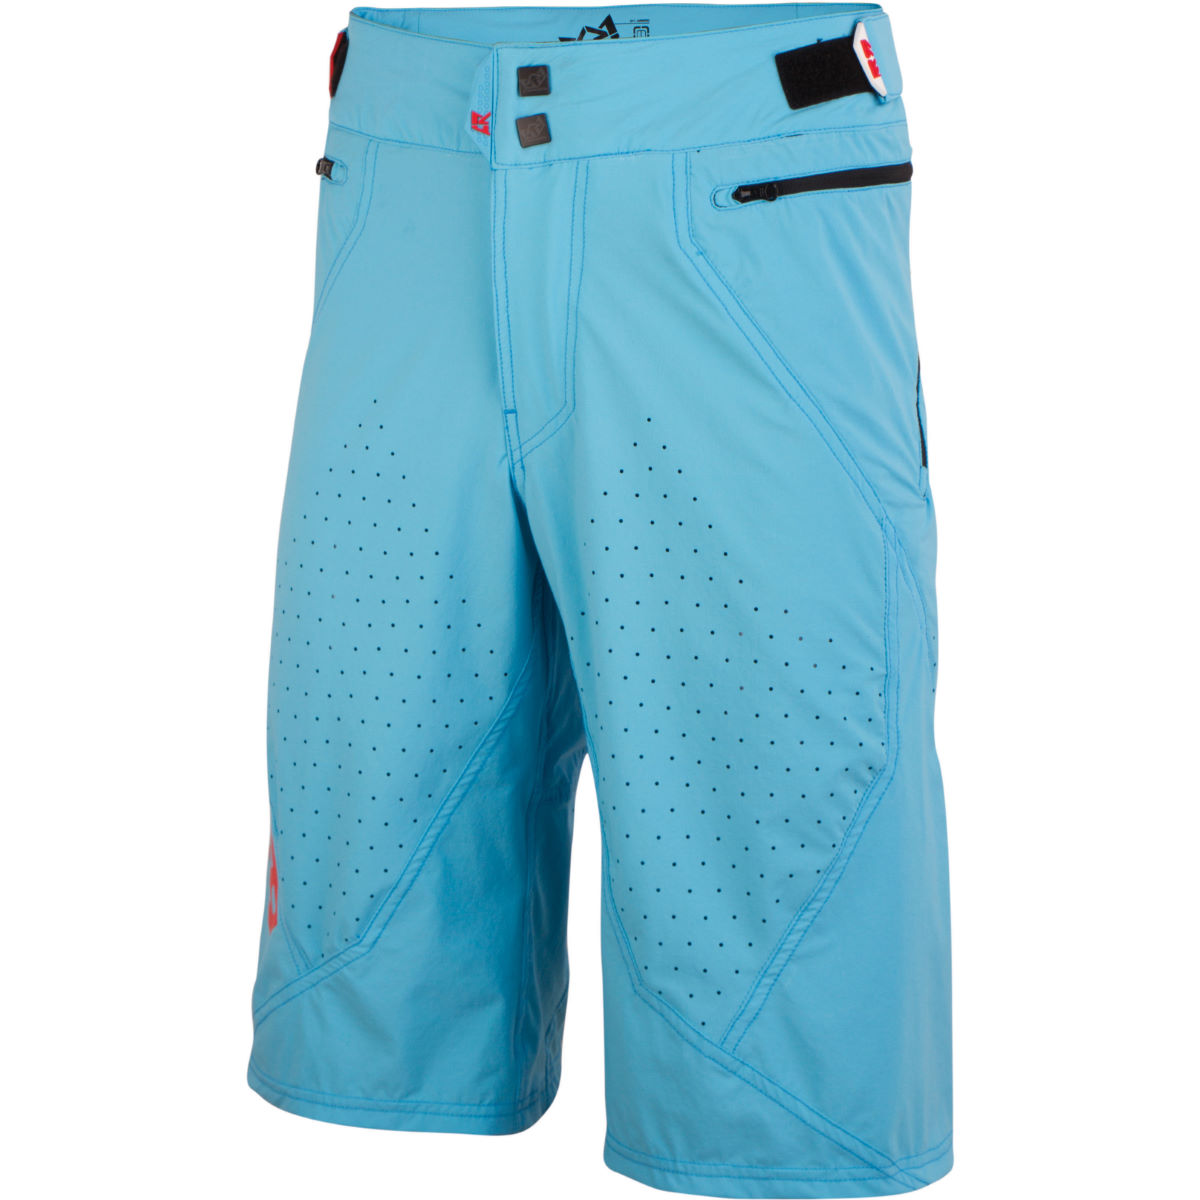 Royal Impact Short - Bermudas